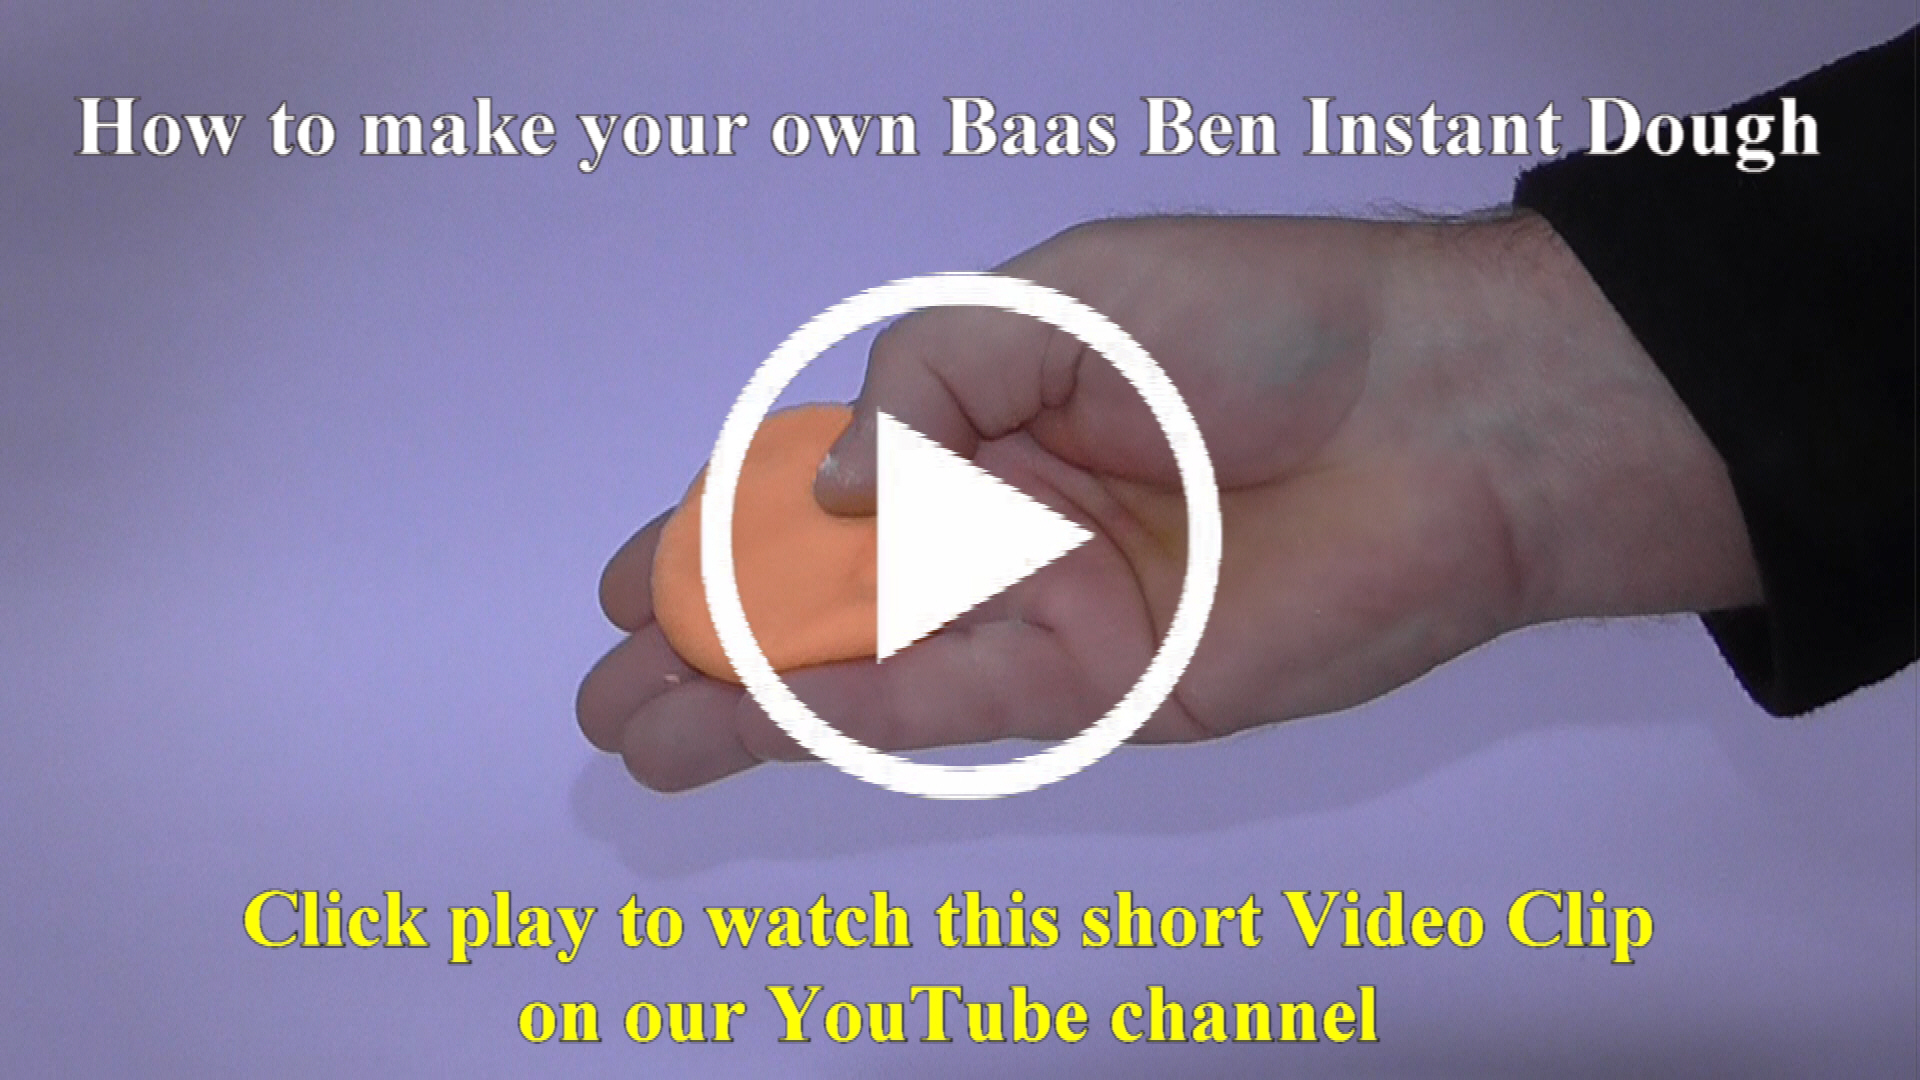 how to make your own baas ben  instant dough thumbnail